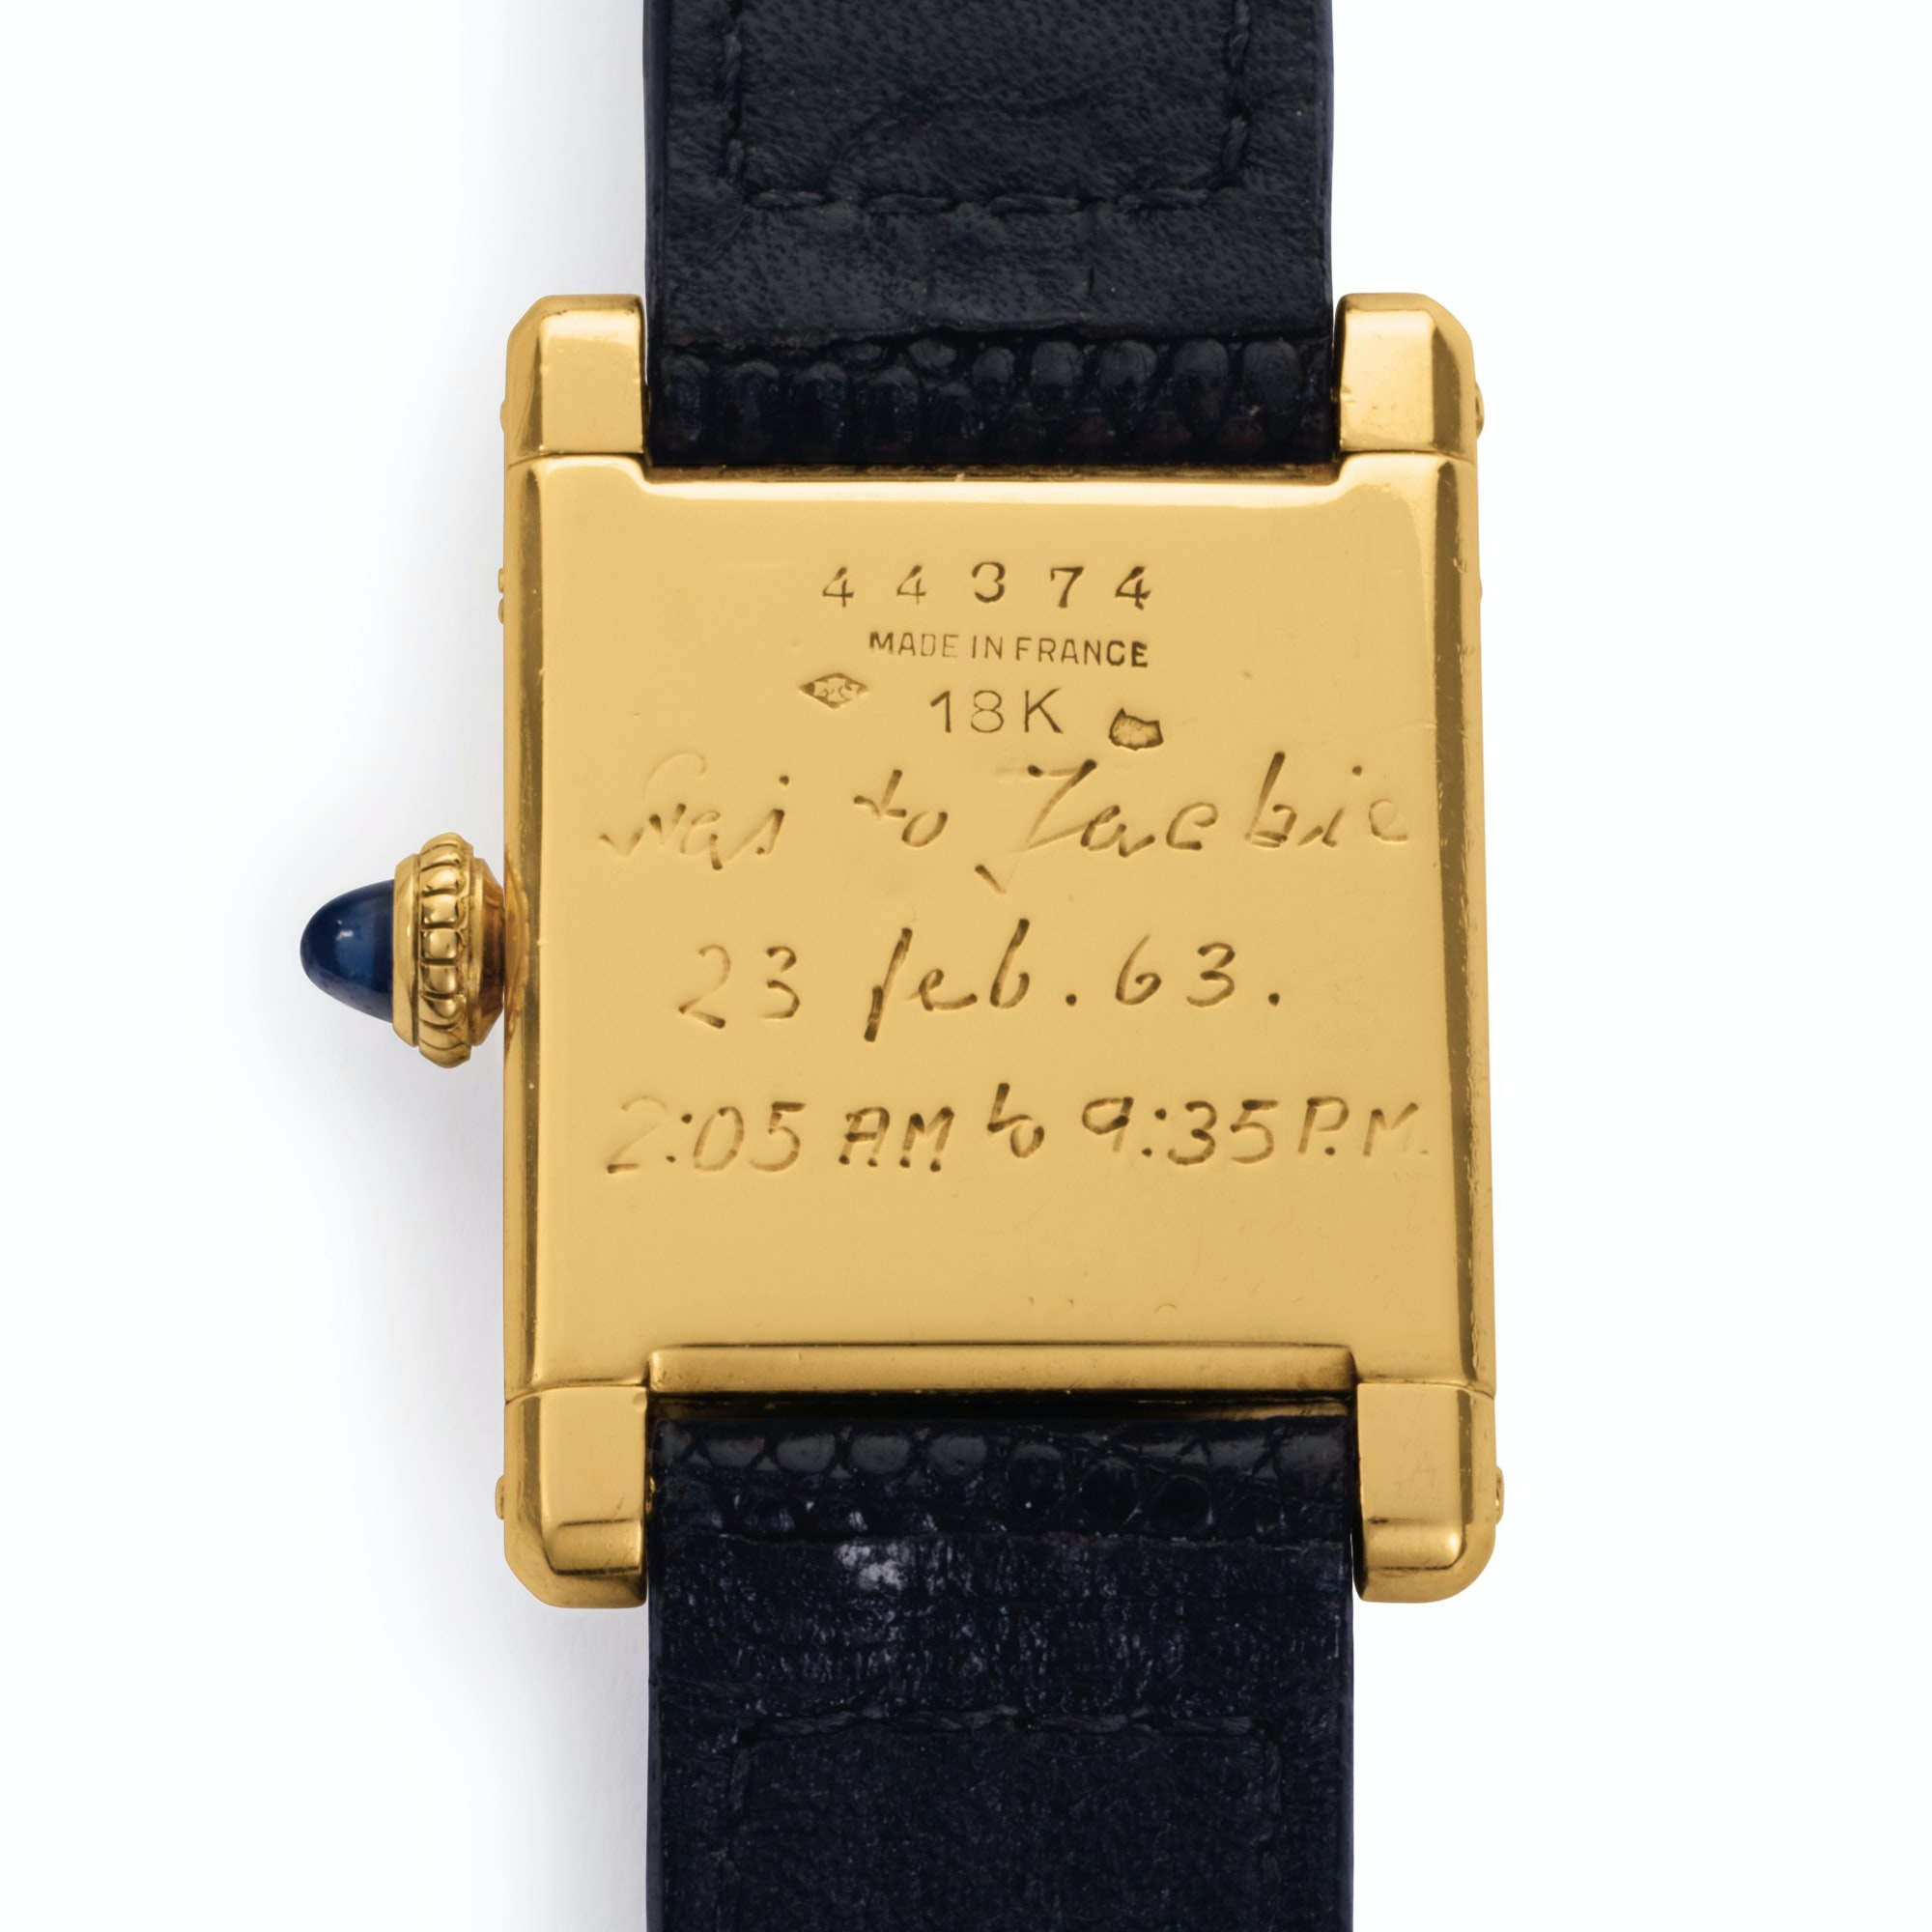 Jacqueline Kennedy Onassis Cartier Tank engraving